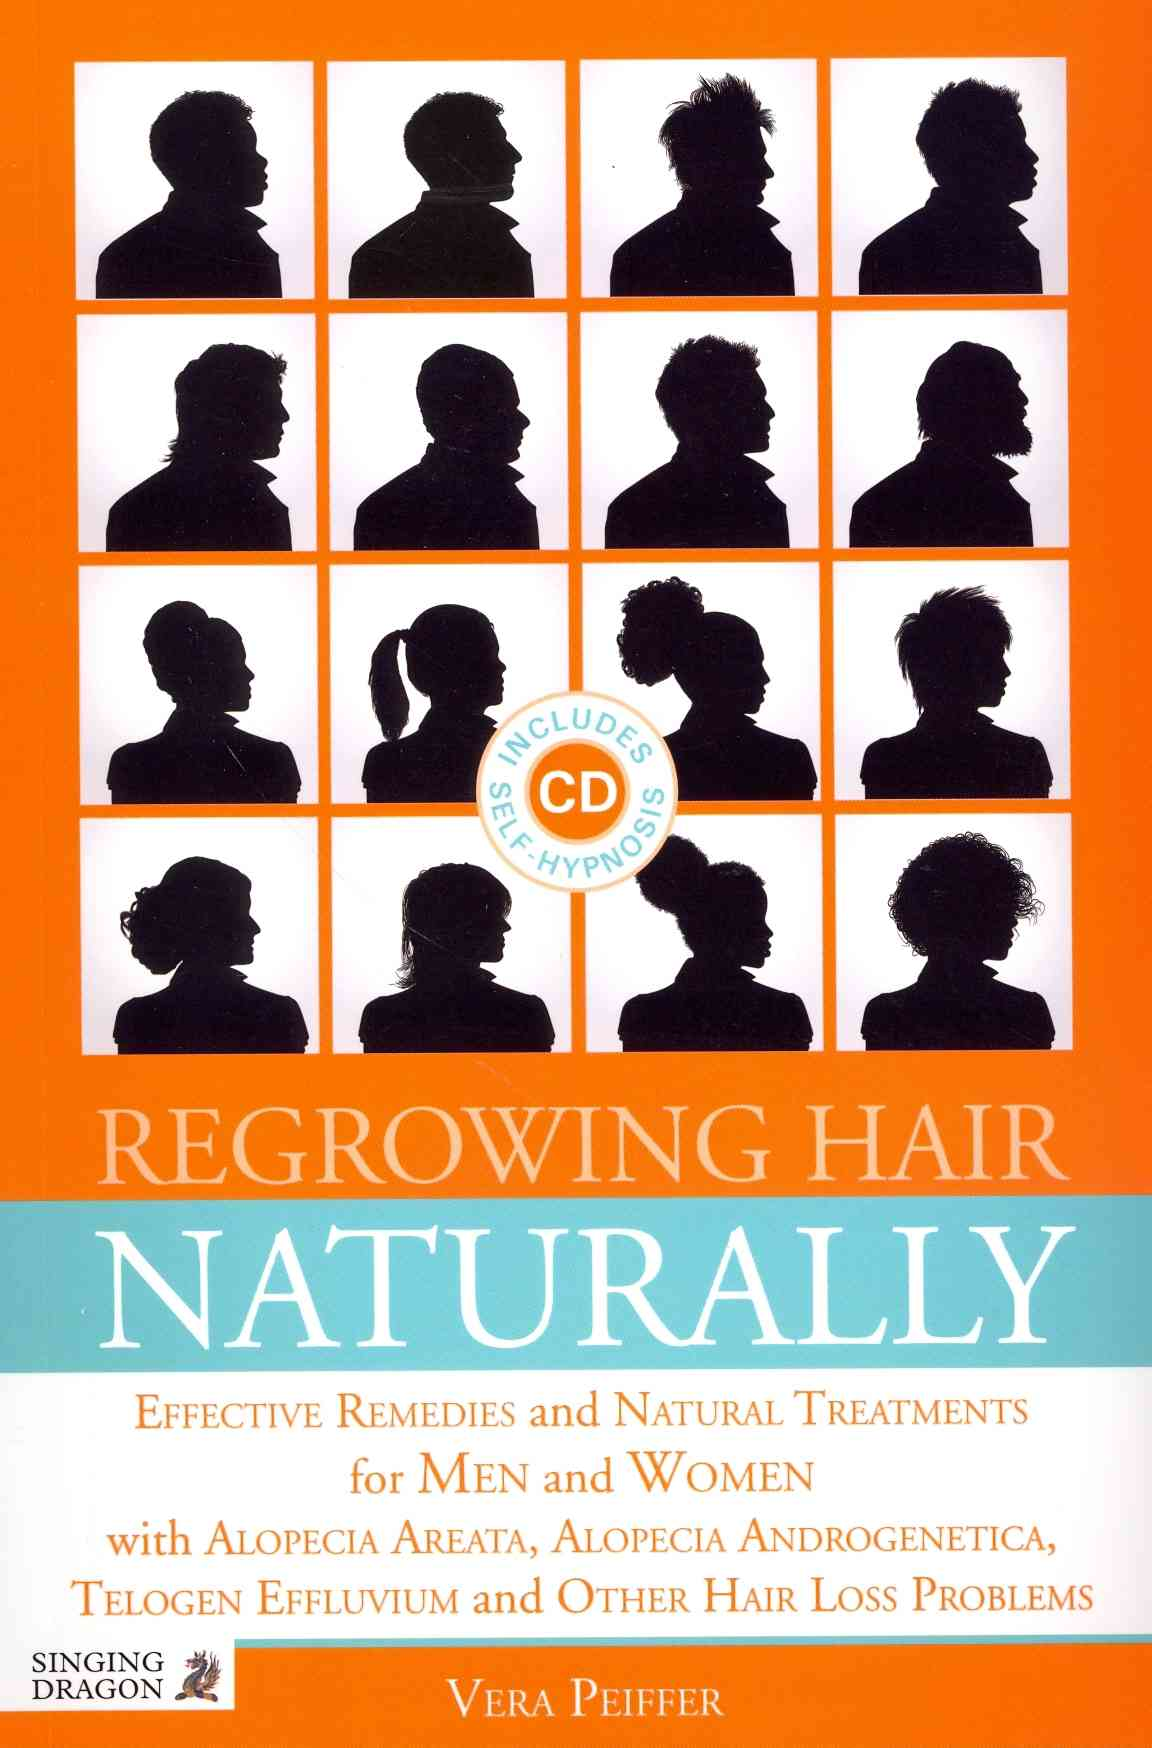 Regrowing Hair Naturally: Effective Remedies and Natural Treatments for Men and Women With Alopecia Areata, Alopecia Androgen...